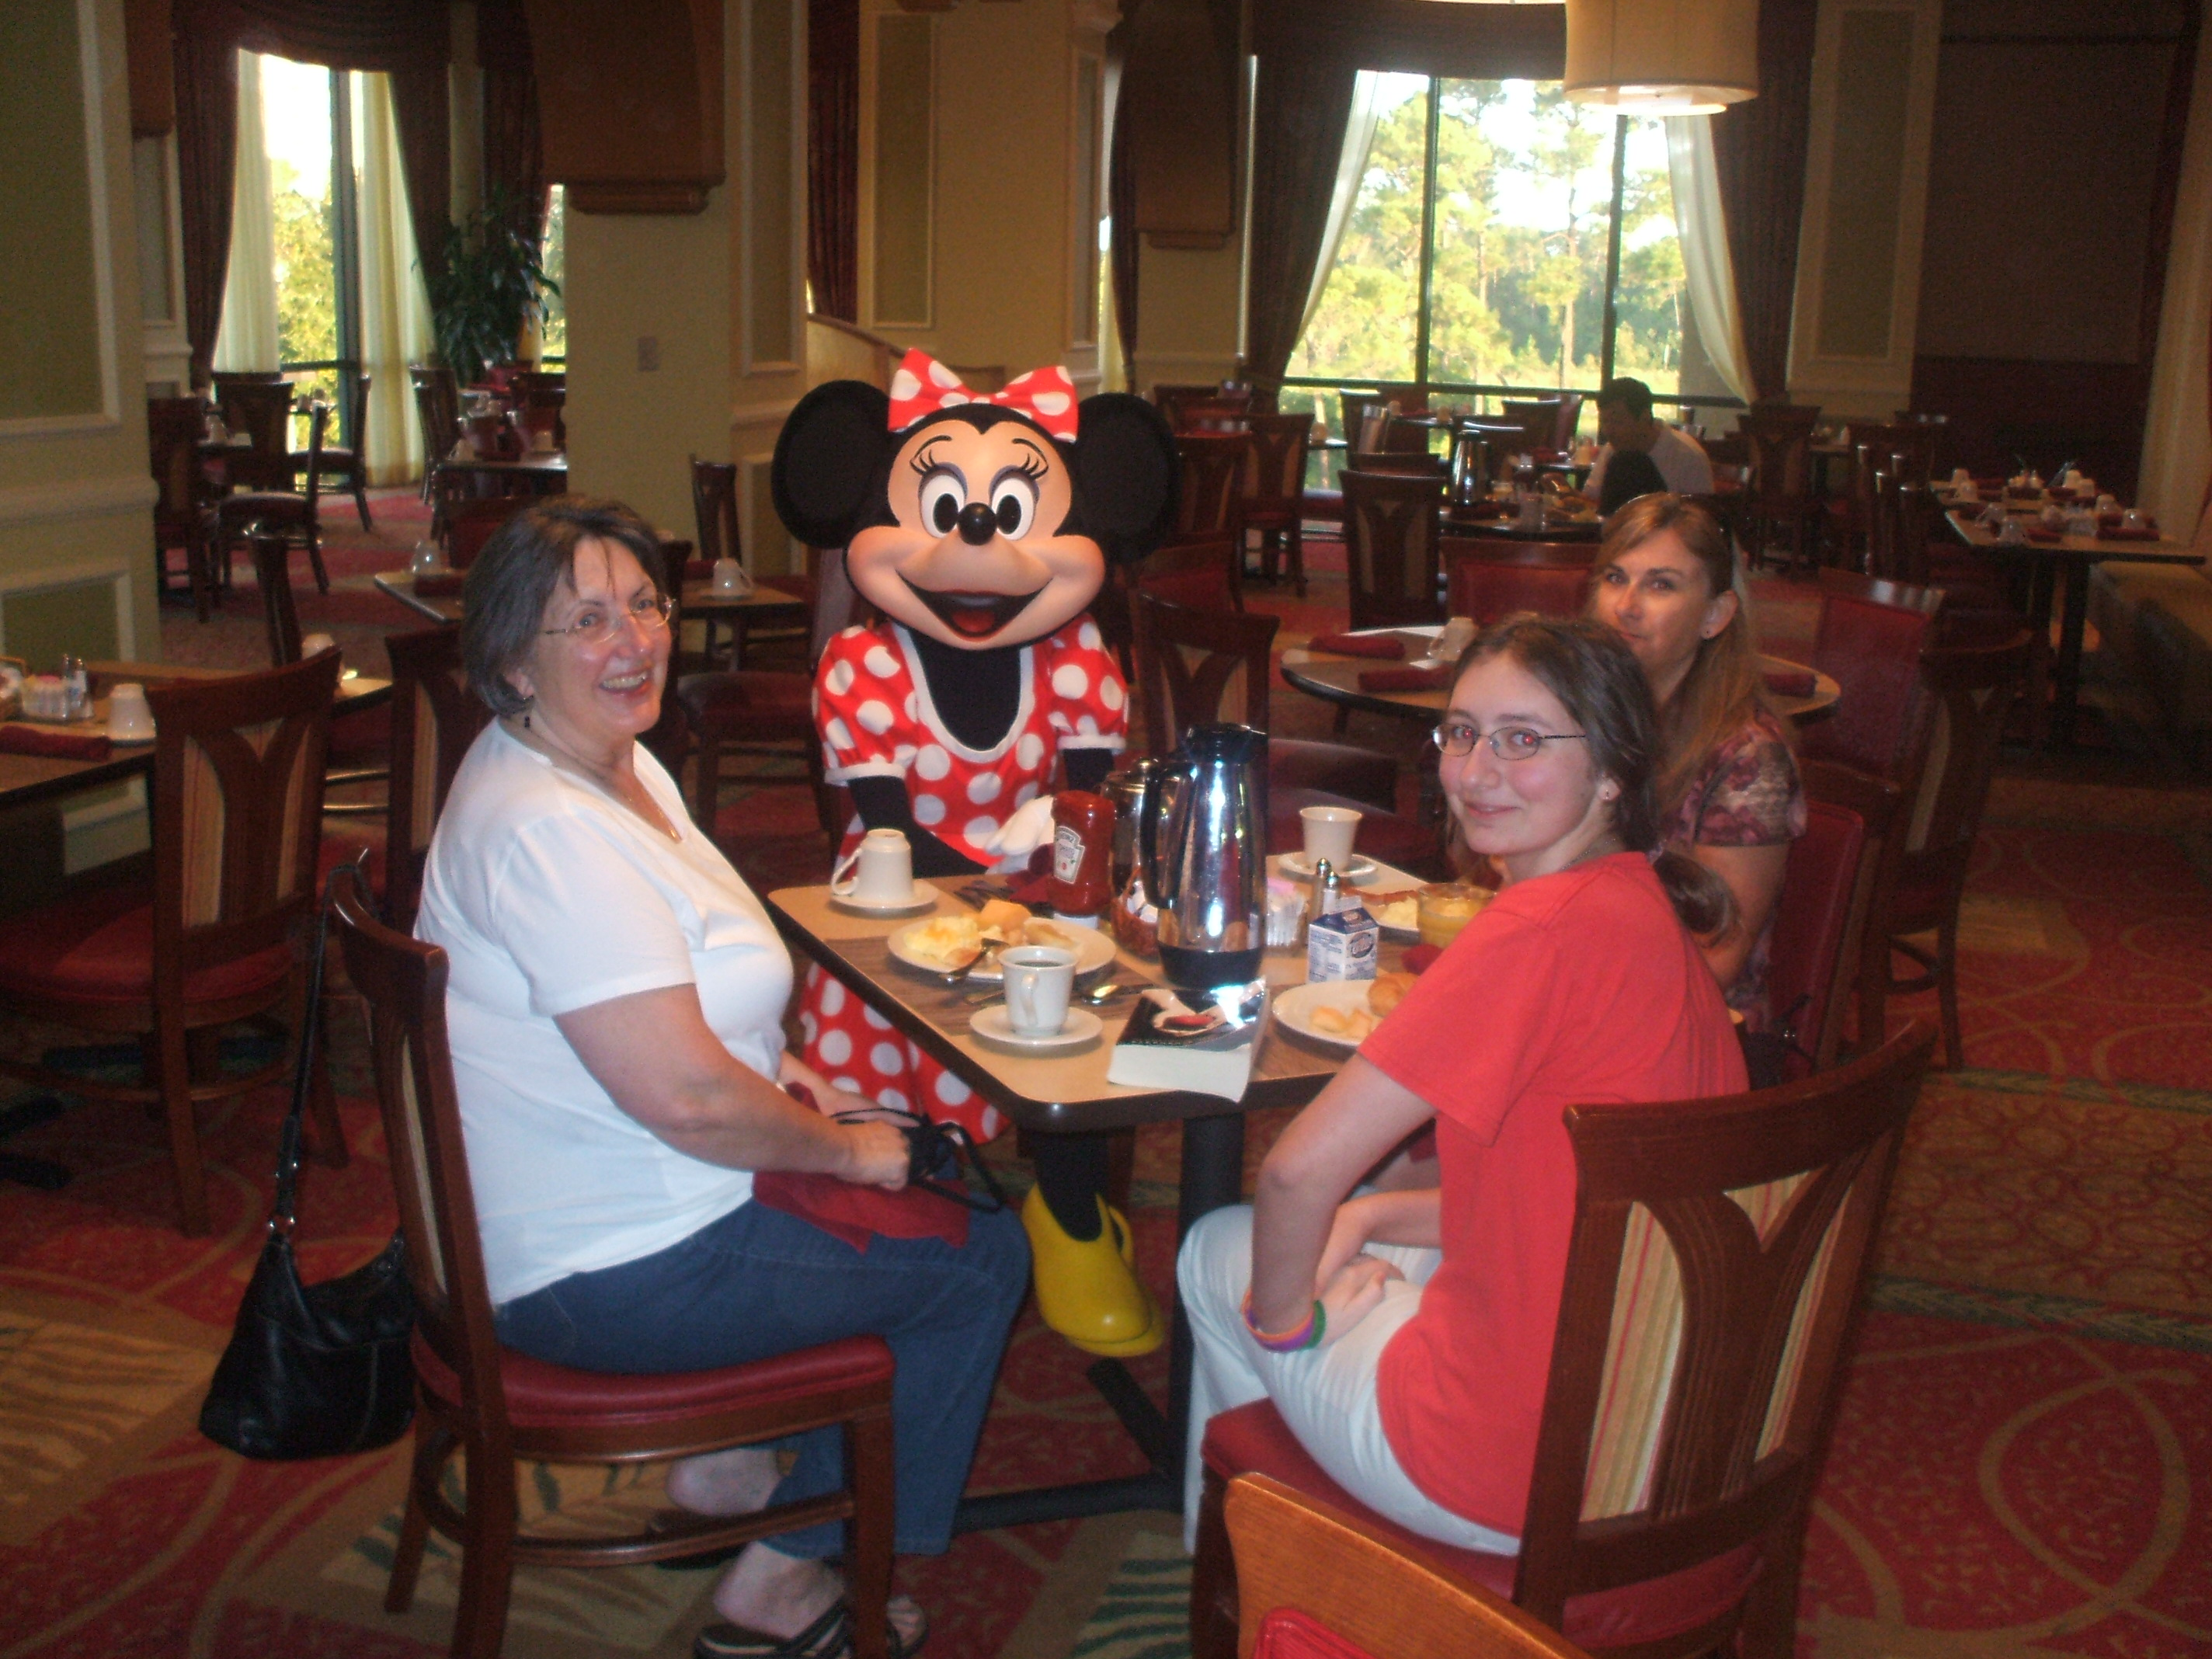 Minnie joins Mrs. LanceAround, # 1 Daughter and Office Manager Anne for breakfast